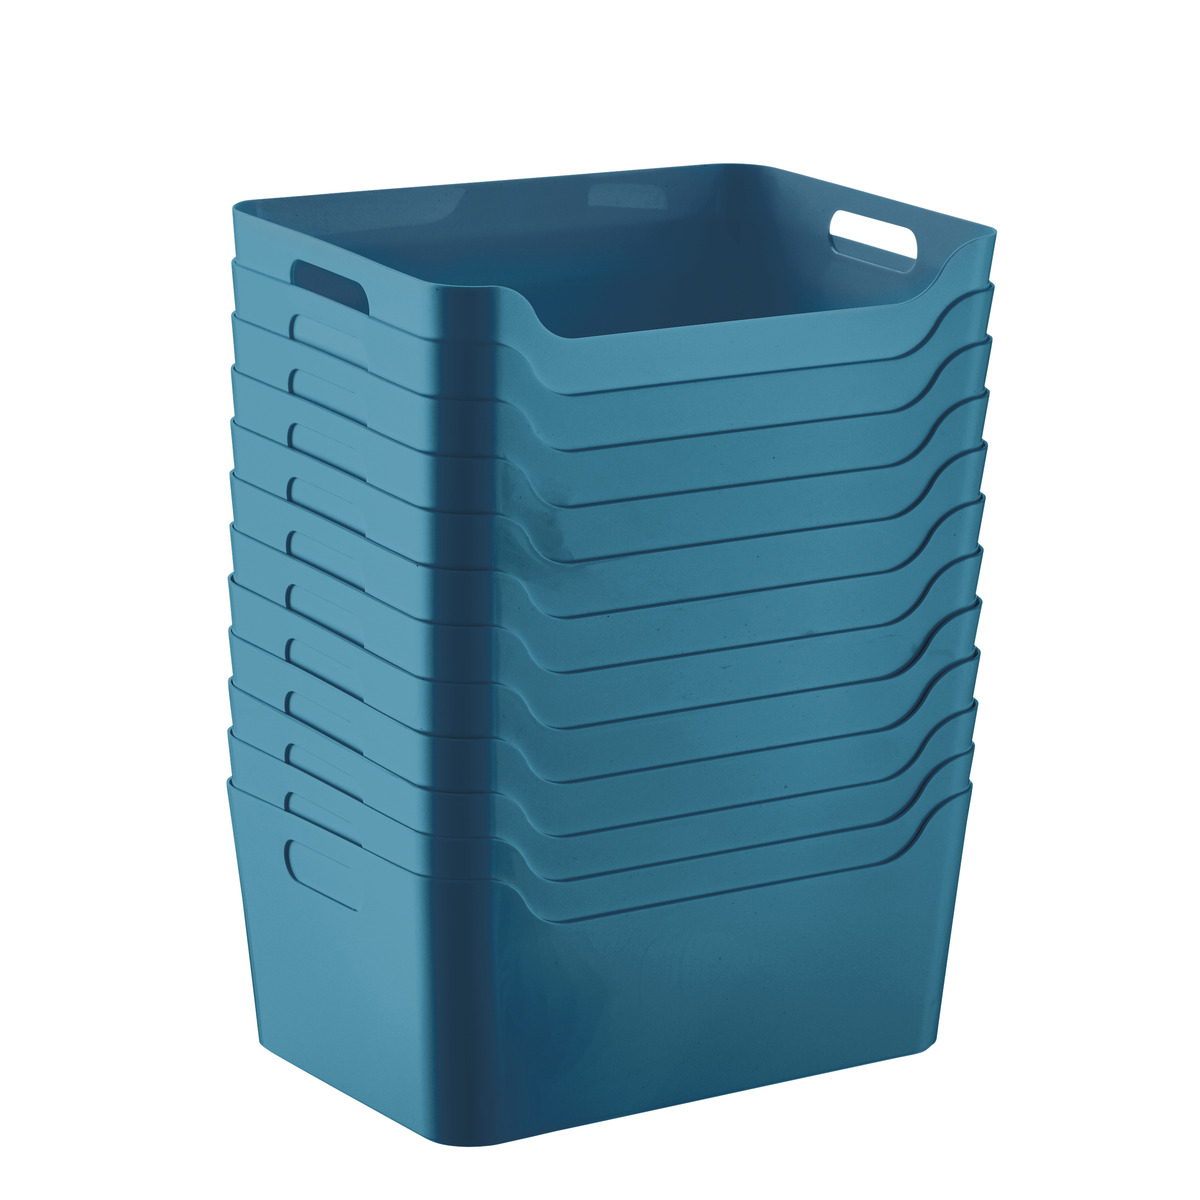 Case of 12 of Teal Plastic Storage Bins with Handles